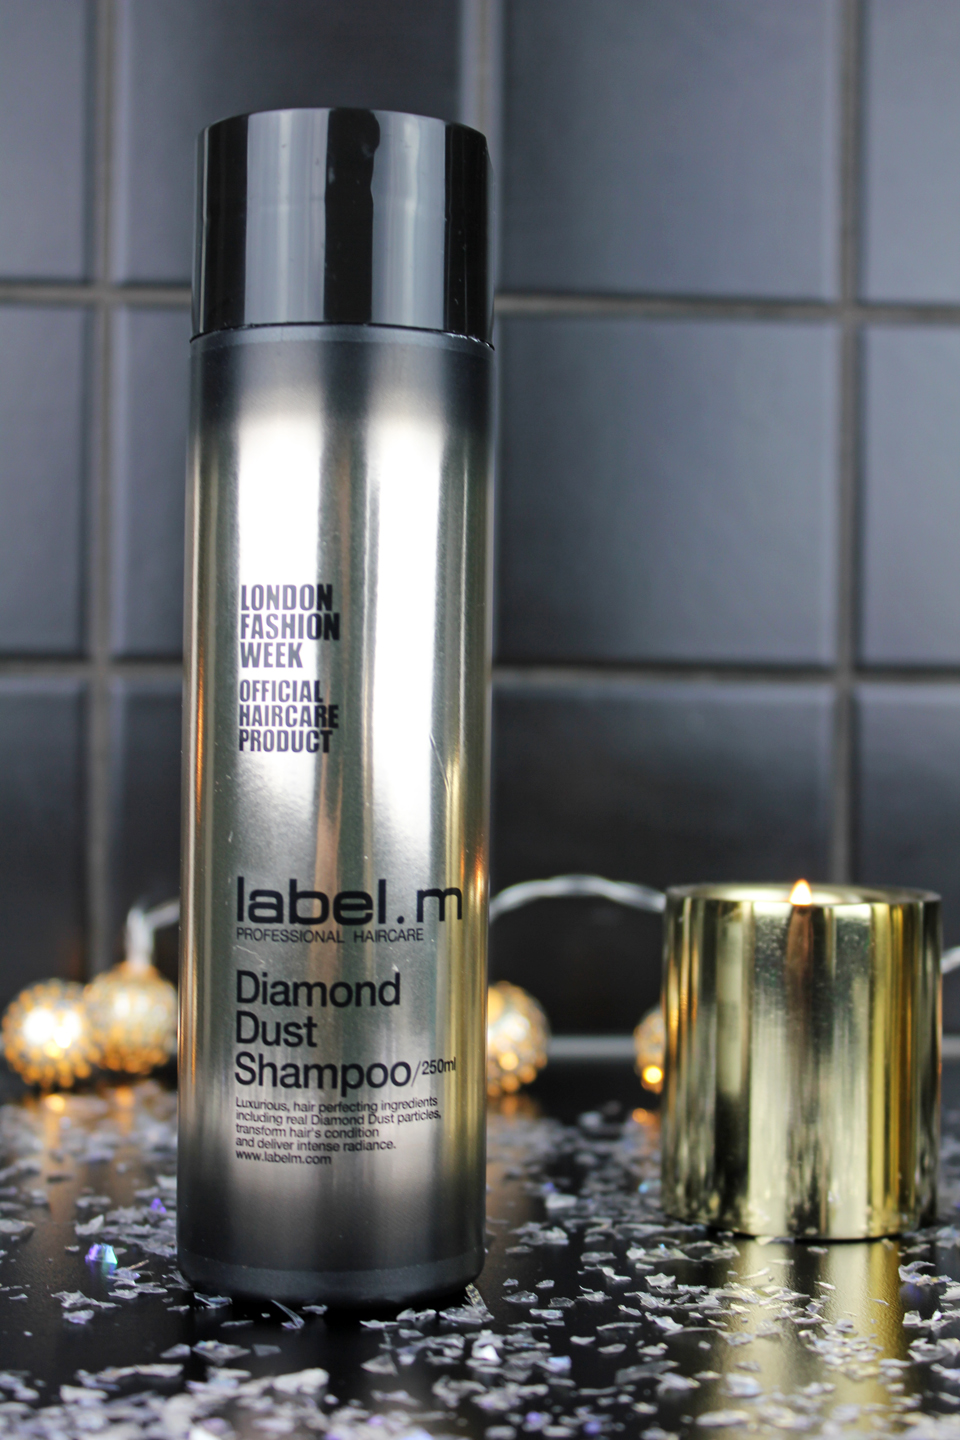 label-m-diamond-dust-shampoo